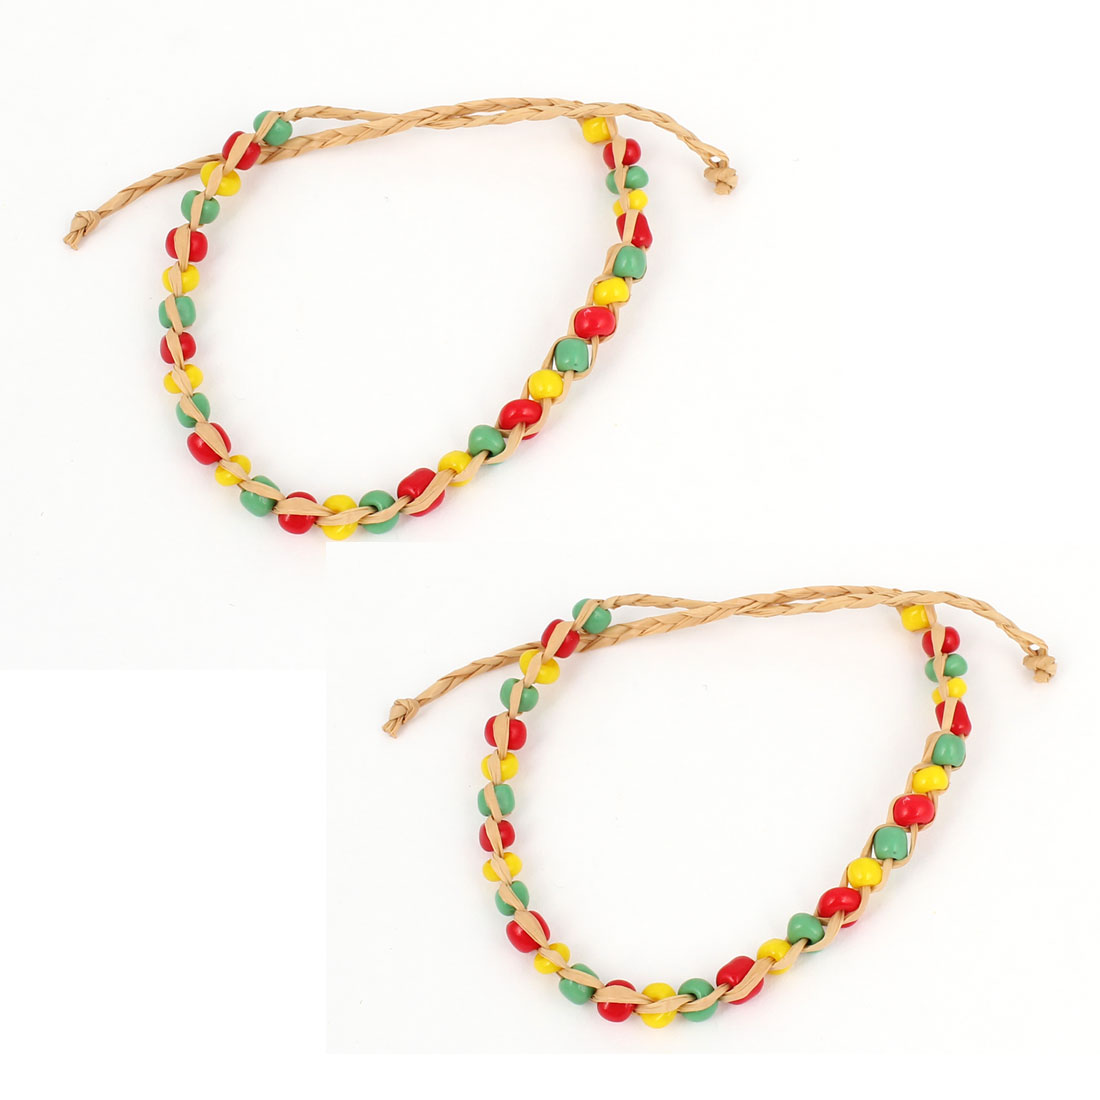 2Pcs Green Red Yellow Adjustable Hand-knitting Beads Straw Woven Bracelet for Women